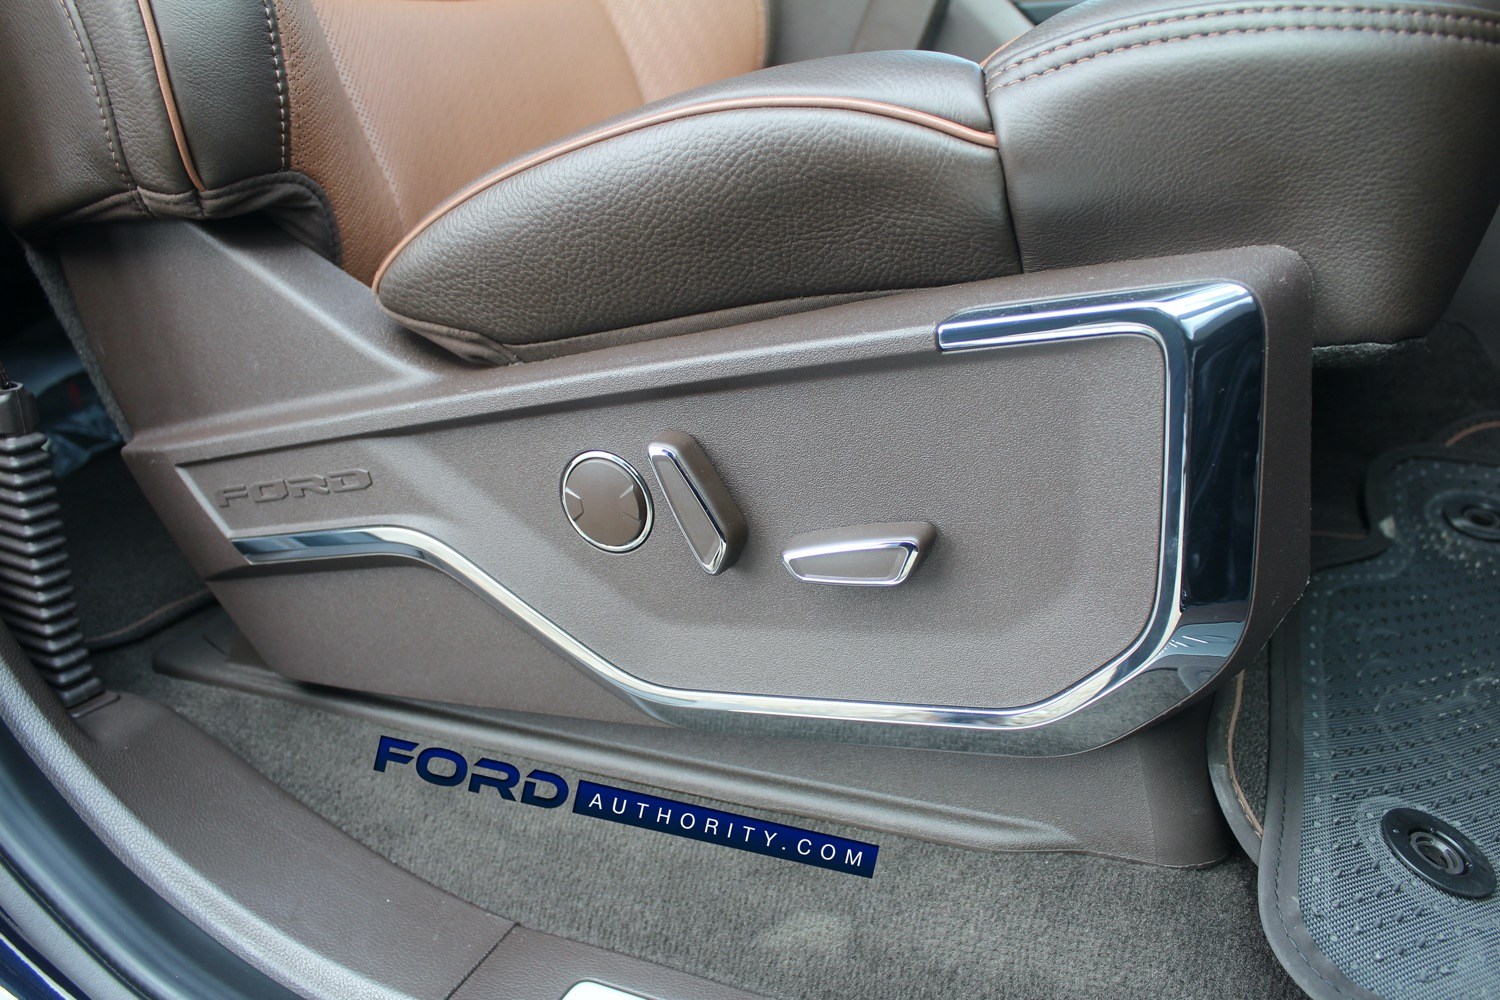 2021-Ford-F-150-King-Ranch-Interior-Front-Row-039-front-passenger-seat-base.jpg